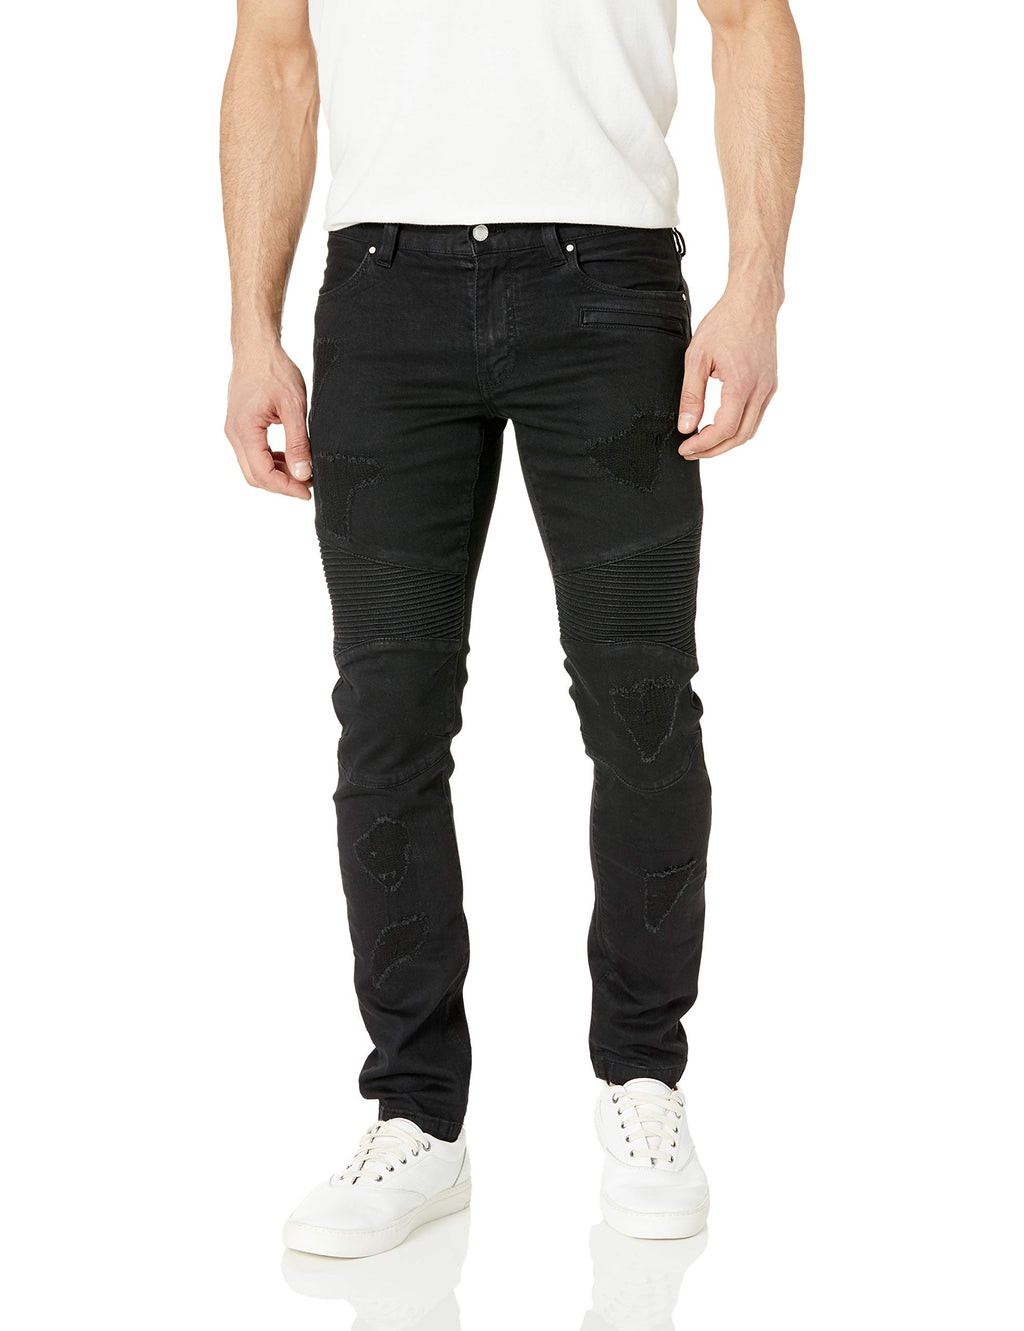 A|X Armani Exchange Men's Solid Colored Ripped Denim Pants, Black, 32 - mroutfit